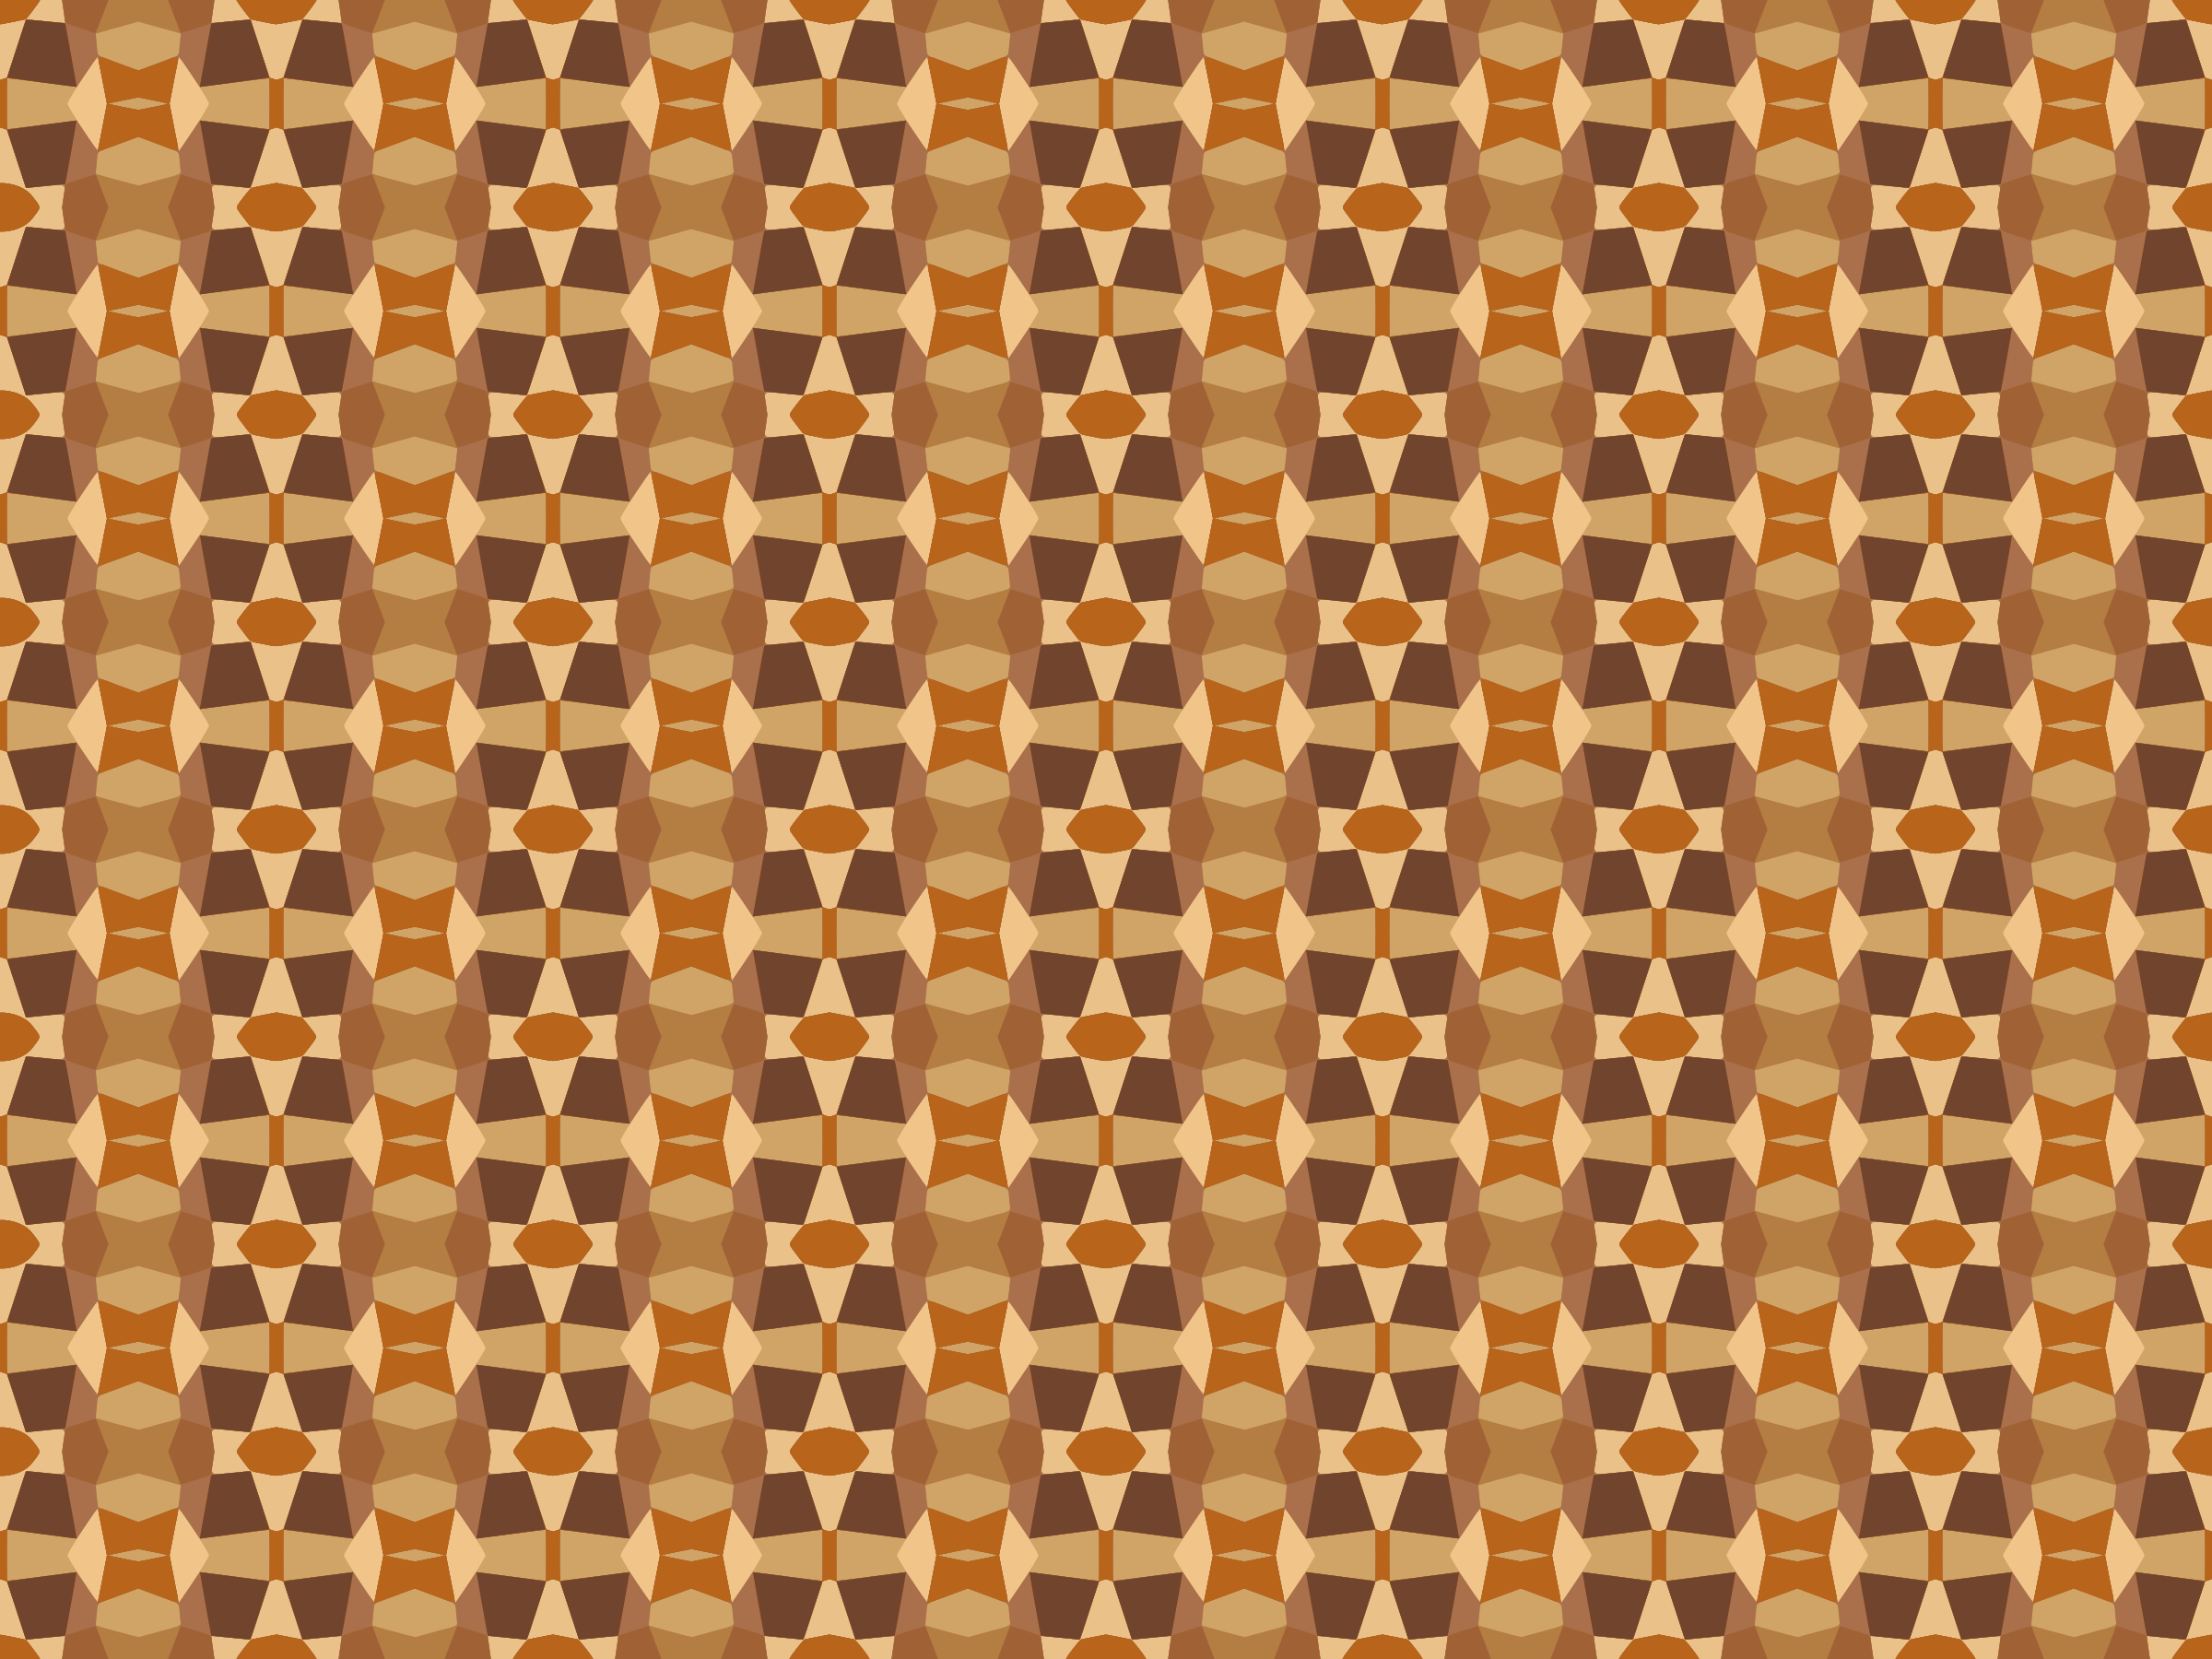 Background pattern 4 by Firkin